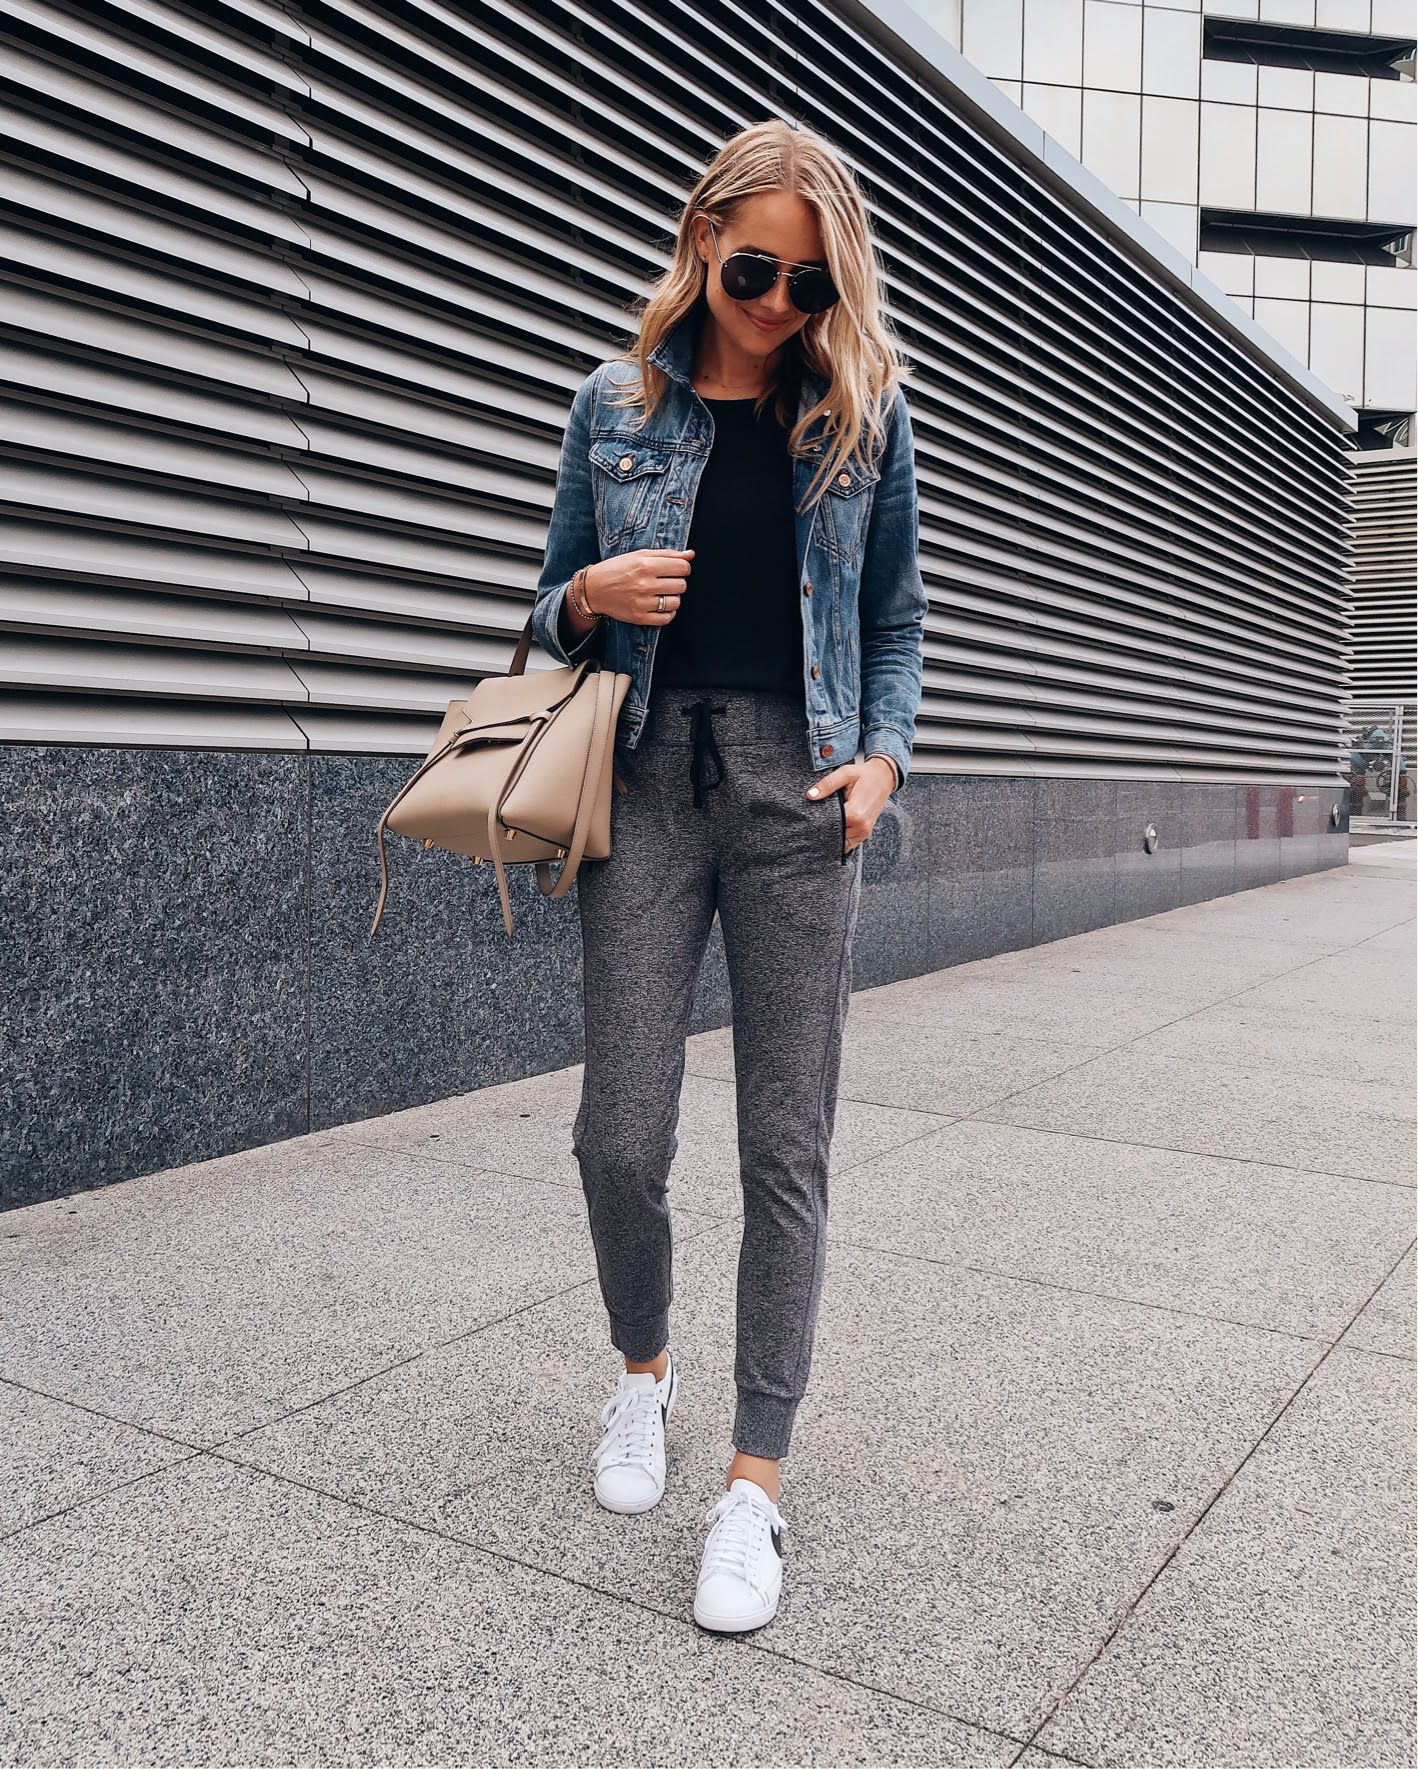 White sneakers + joggers and denim perfect off duty style